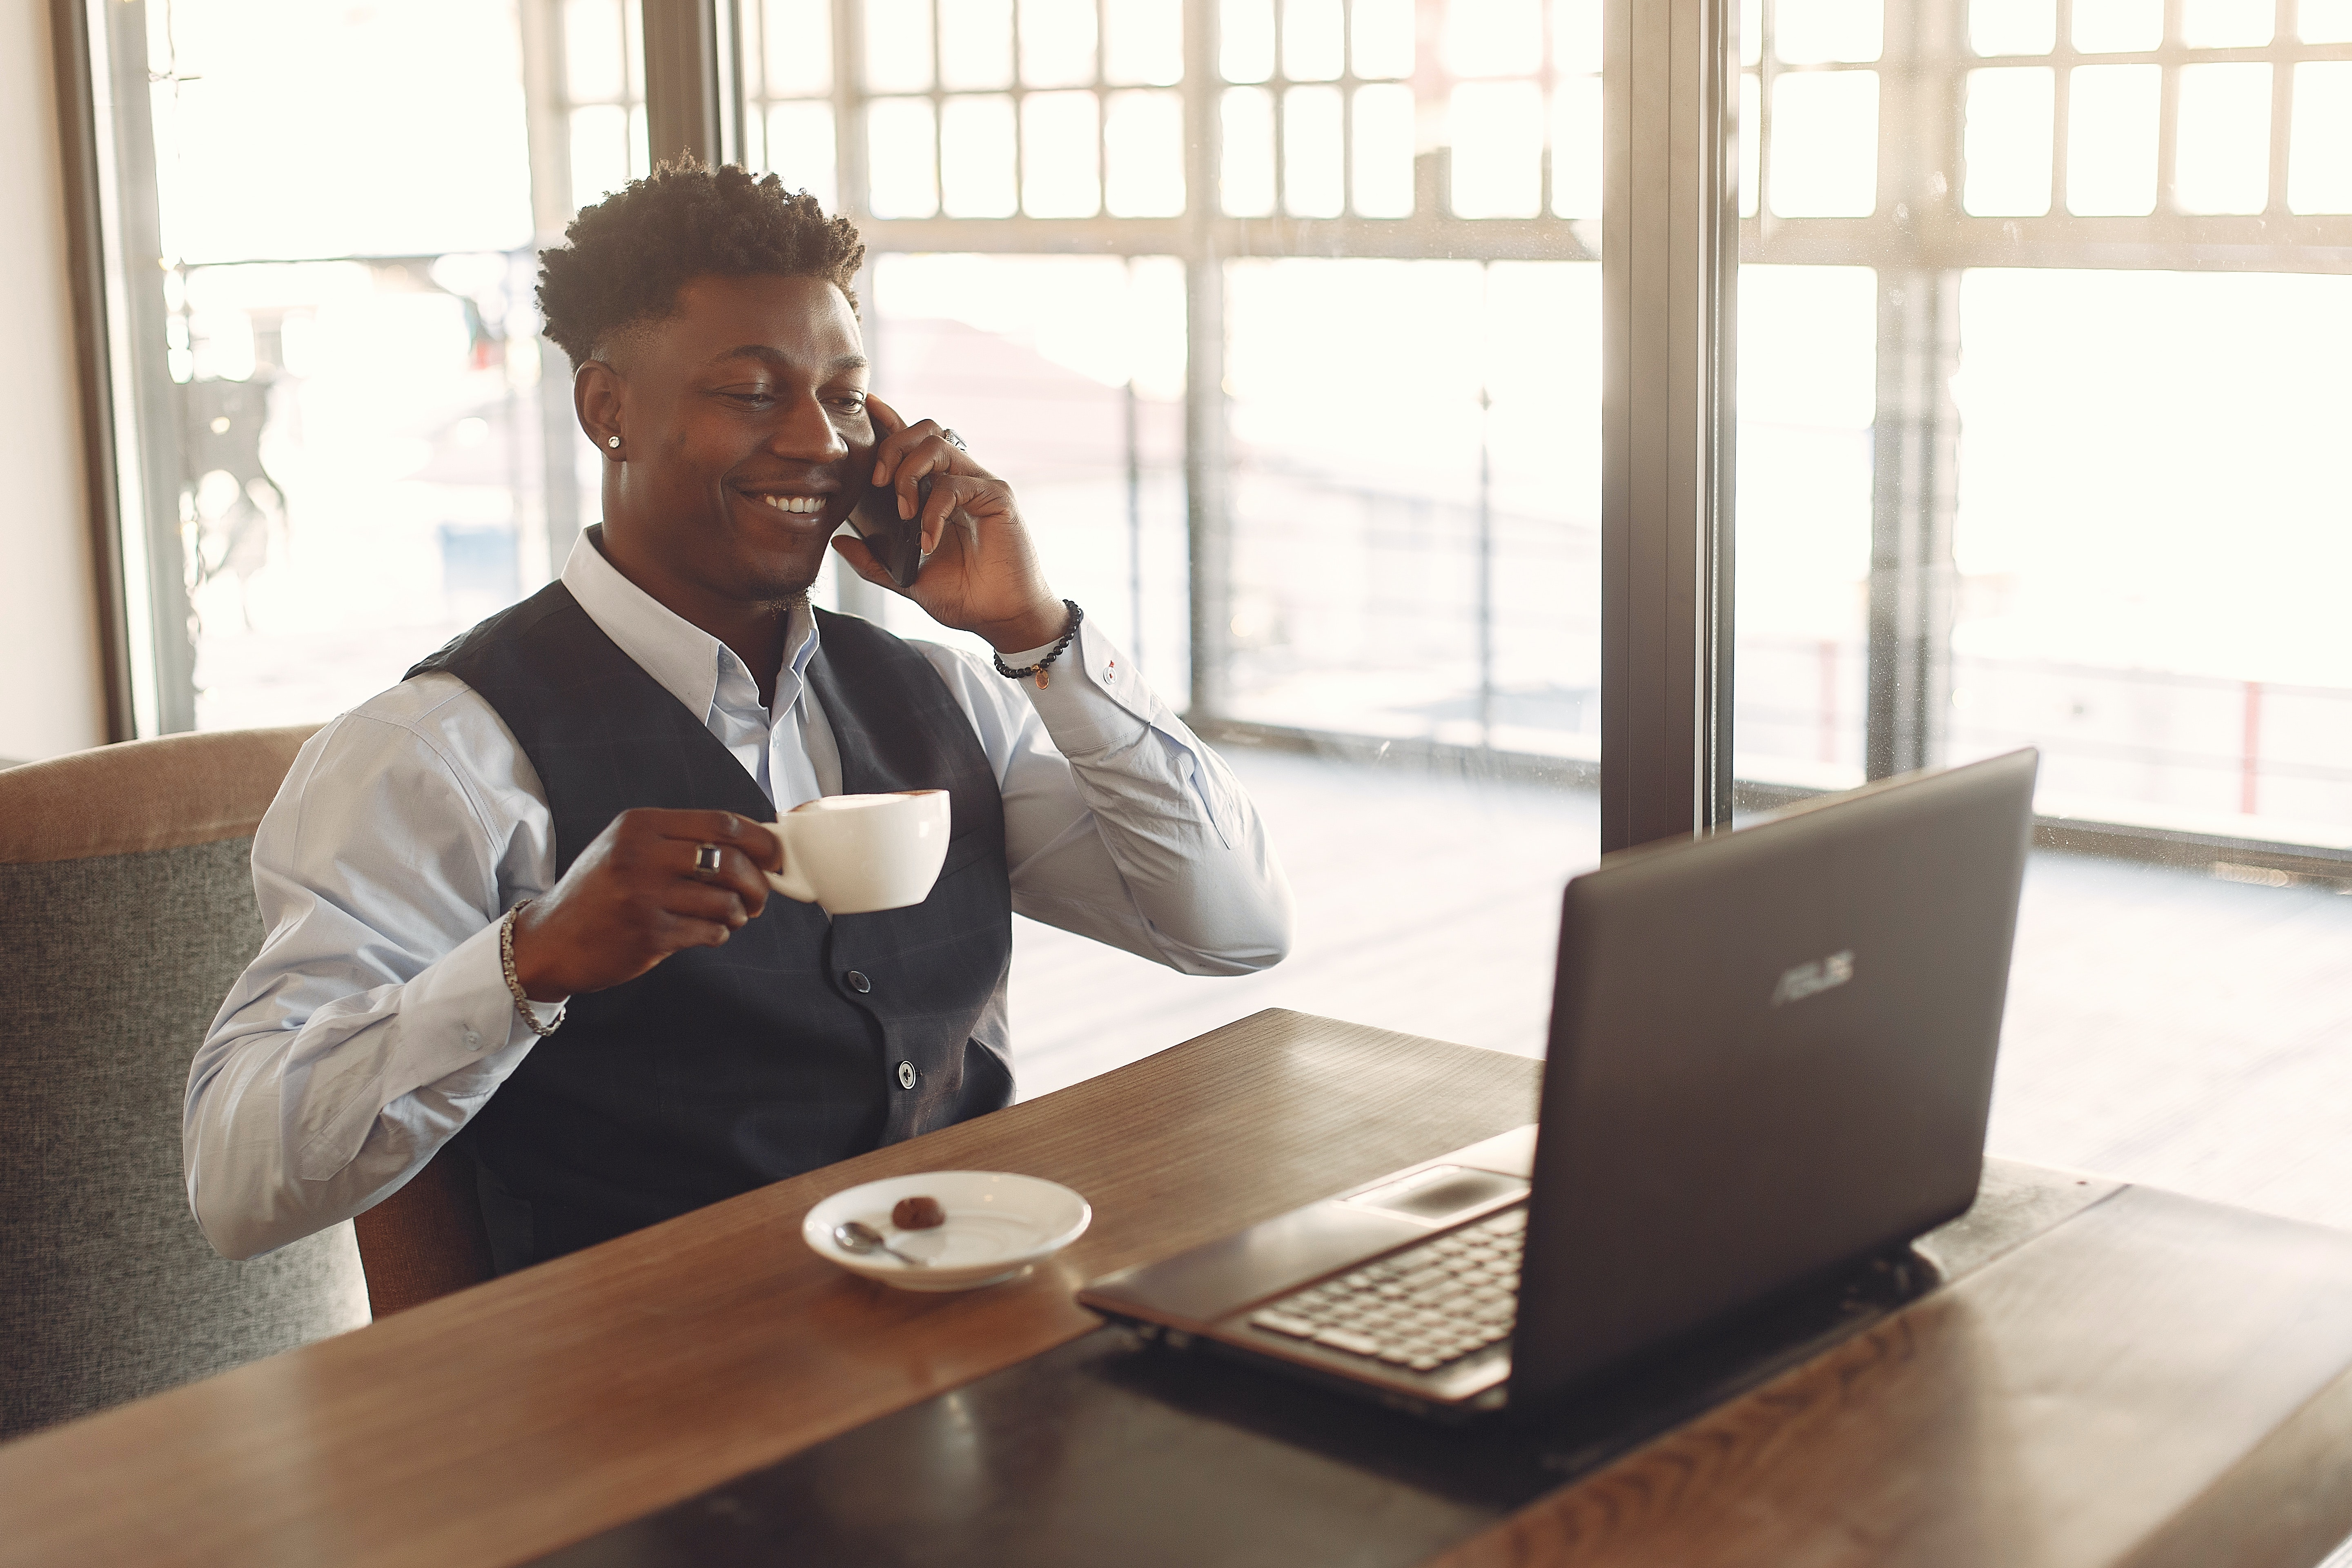 Male professional sitting at a desk drinking coffee